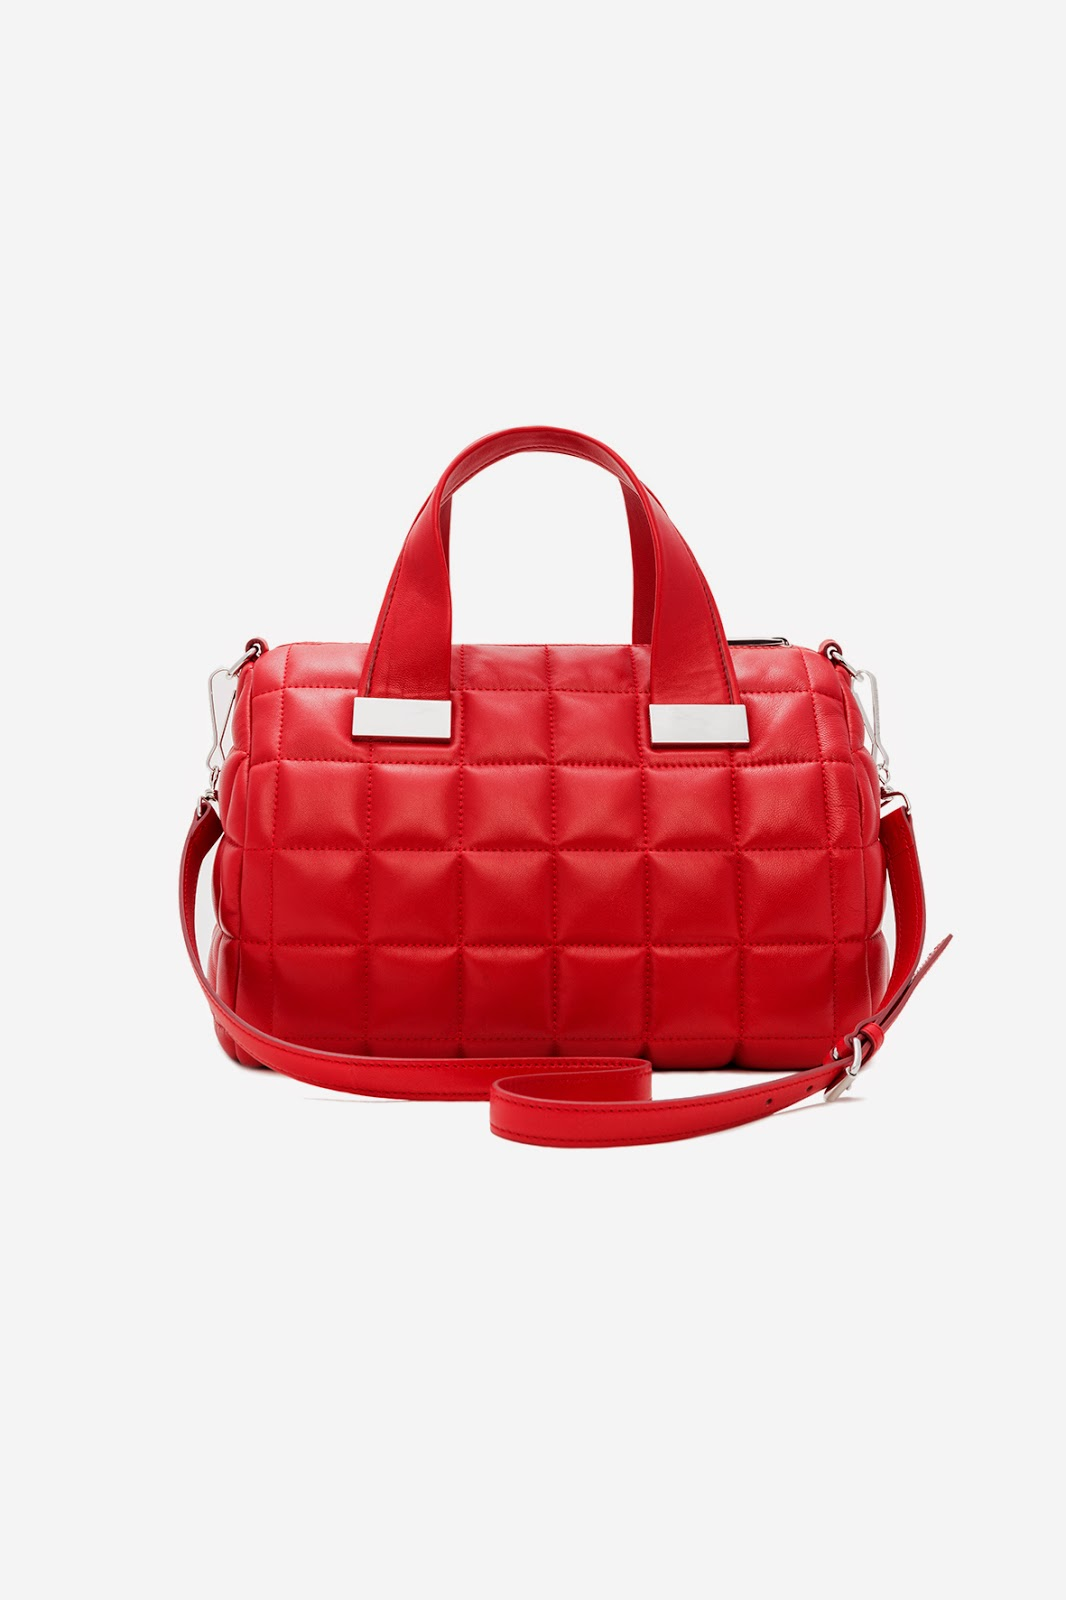 Avance SS15 Soft Collection Bimba y Lola, bag, style, leather, blog de moda, trendy, cool,